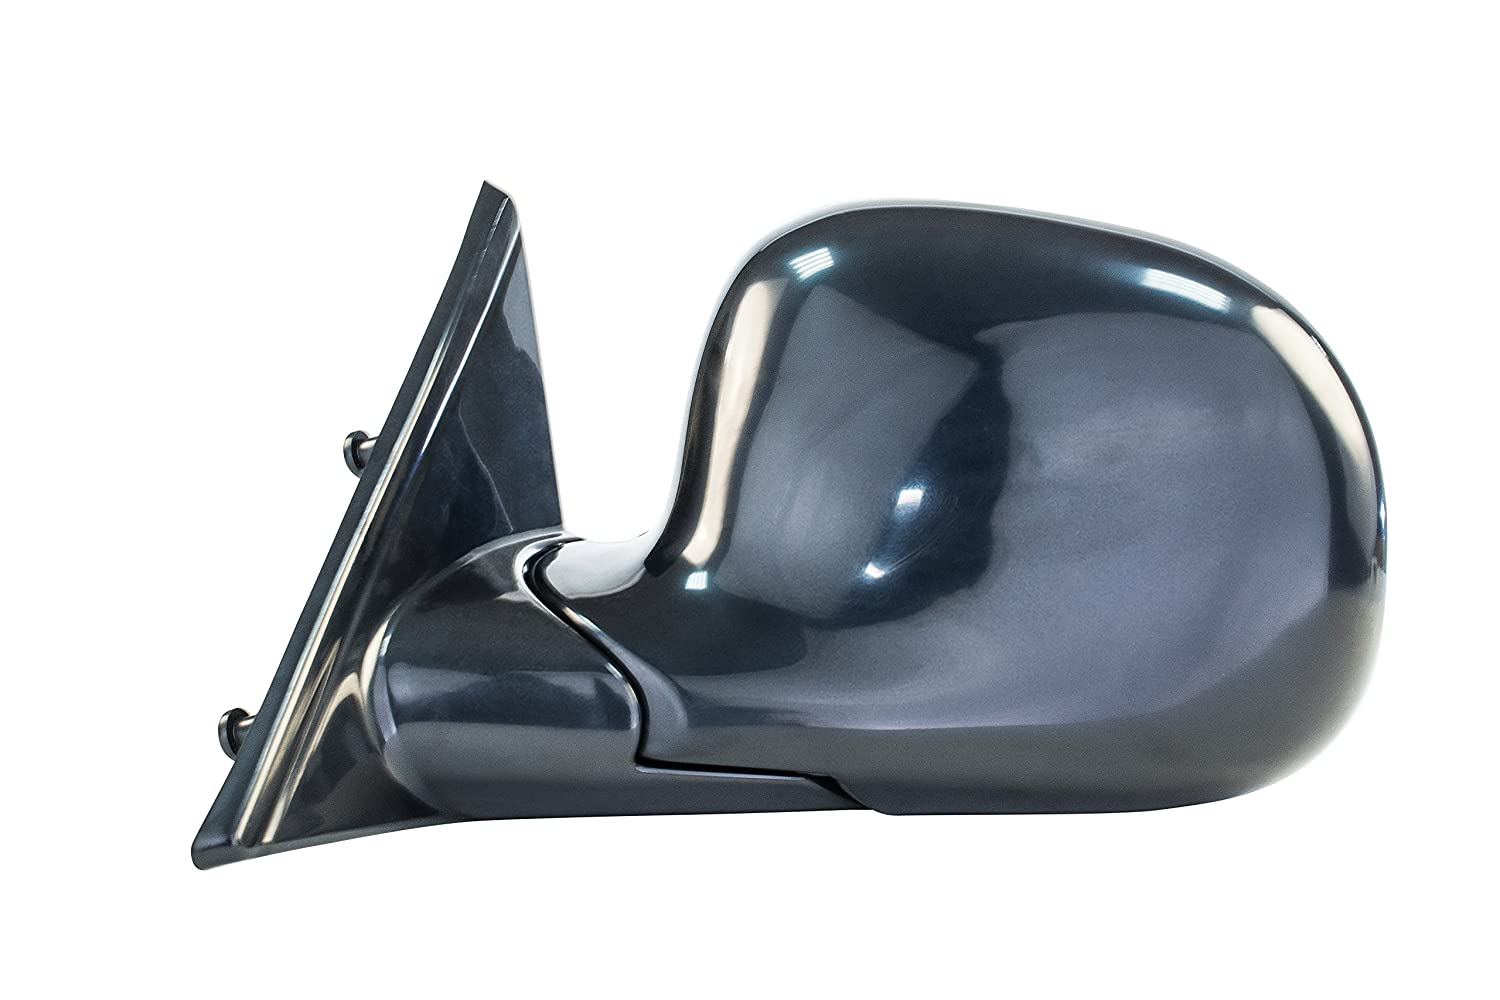 95-98 Blazer Dependable Direct Right Side Textured Mirror for 94-97 Chevy S10